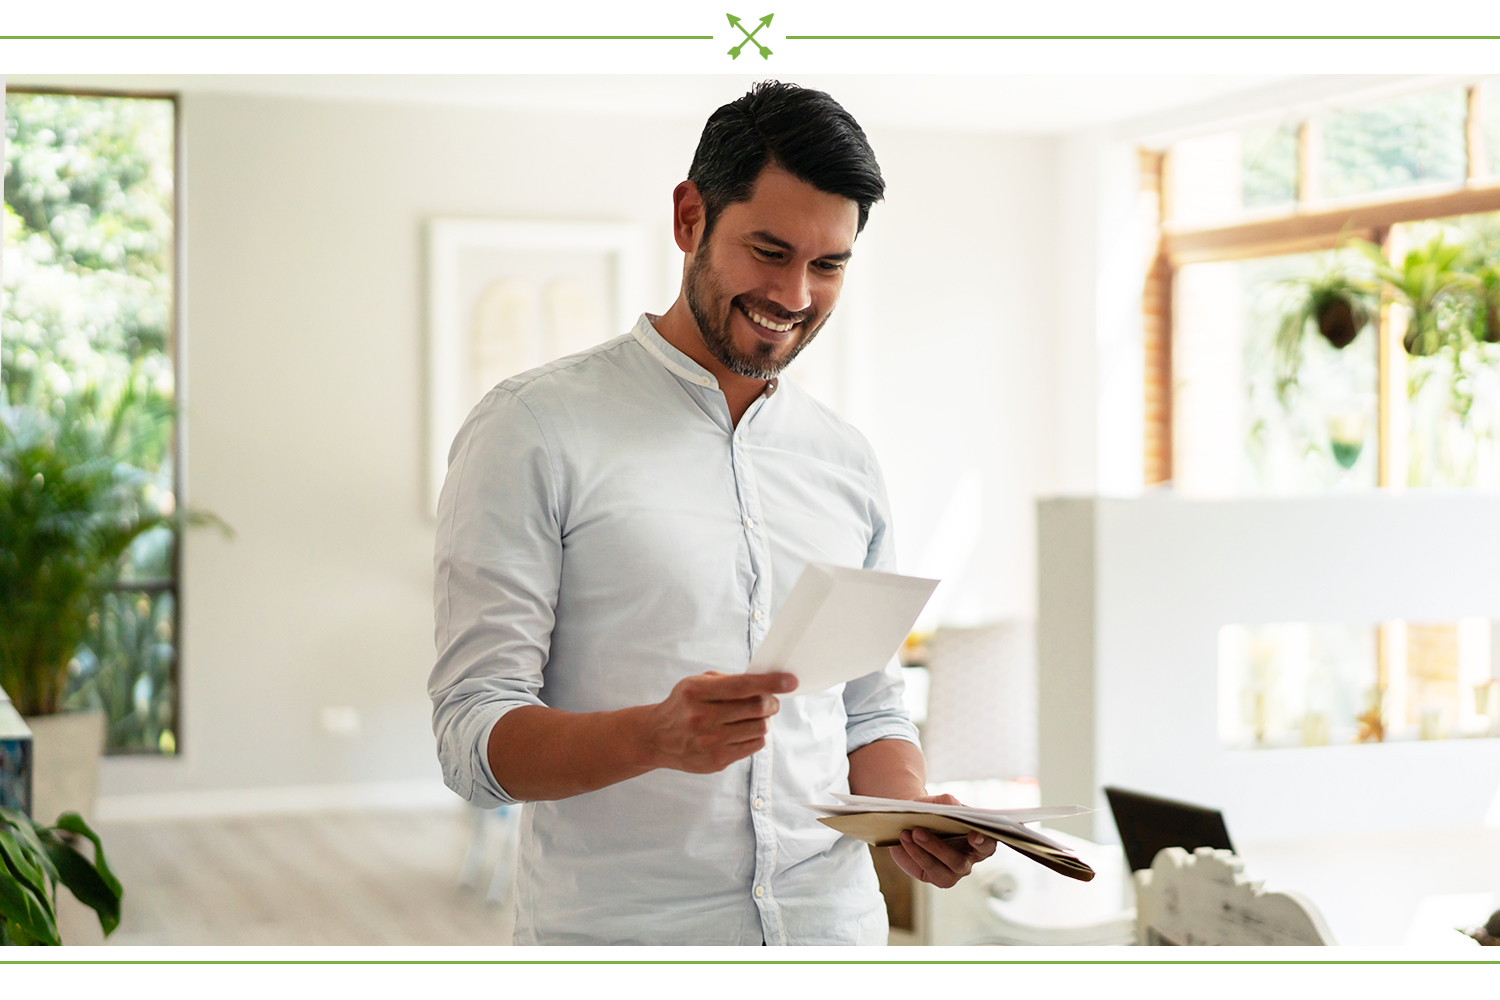 man smiling at a note from his friend